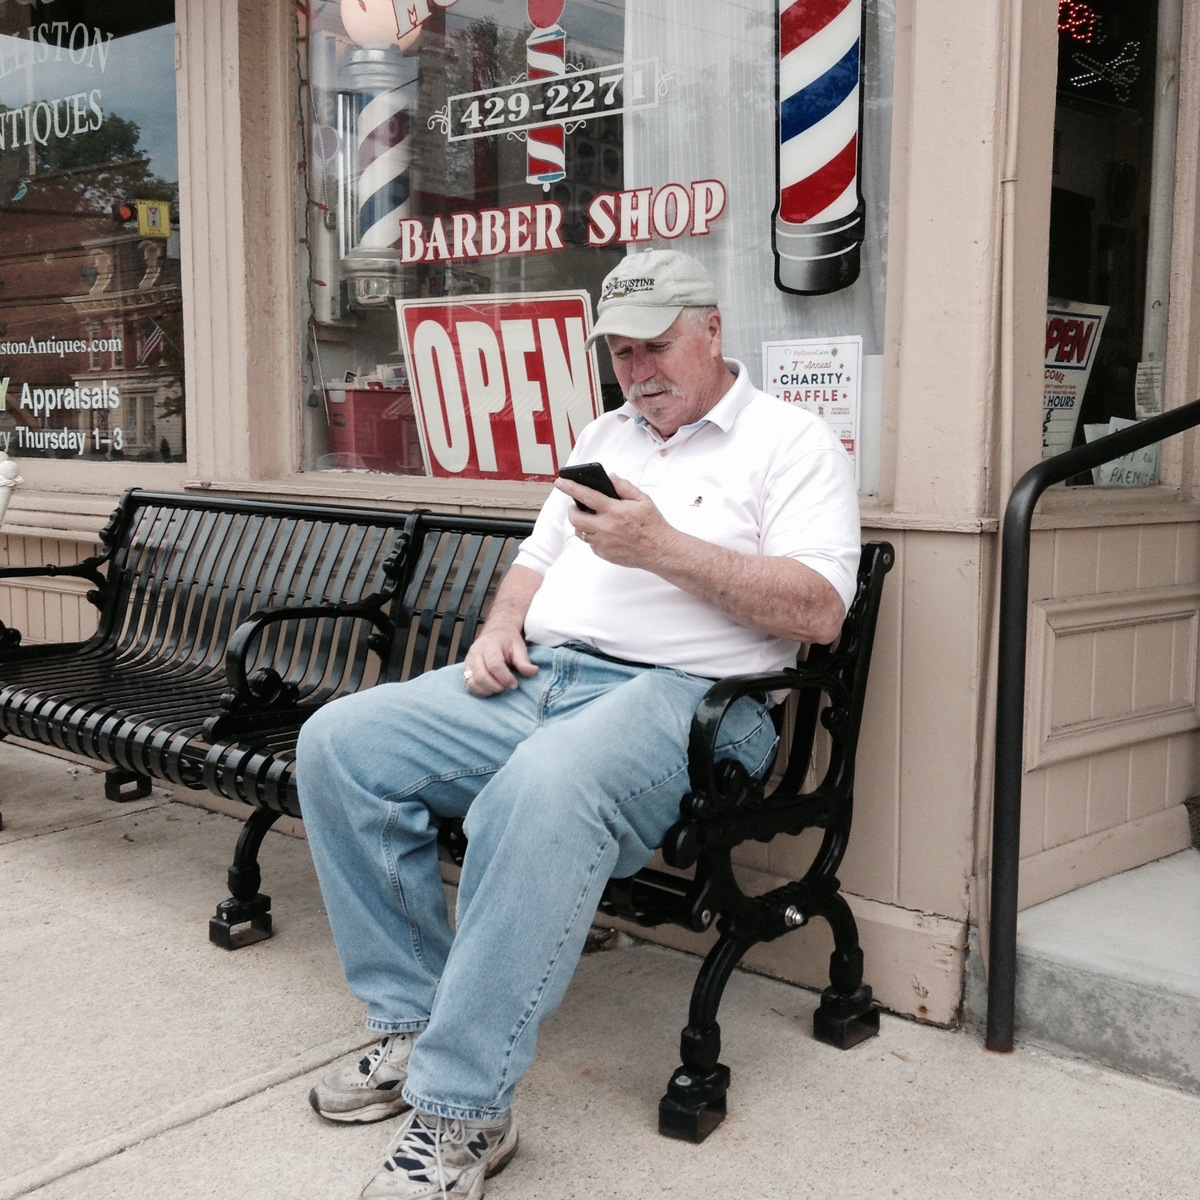 Man on a Cellphone Outside a Barbershop in Holliston, MA